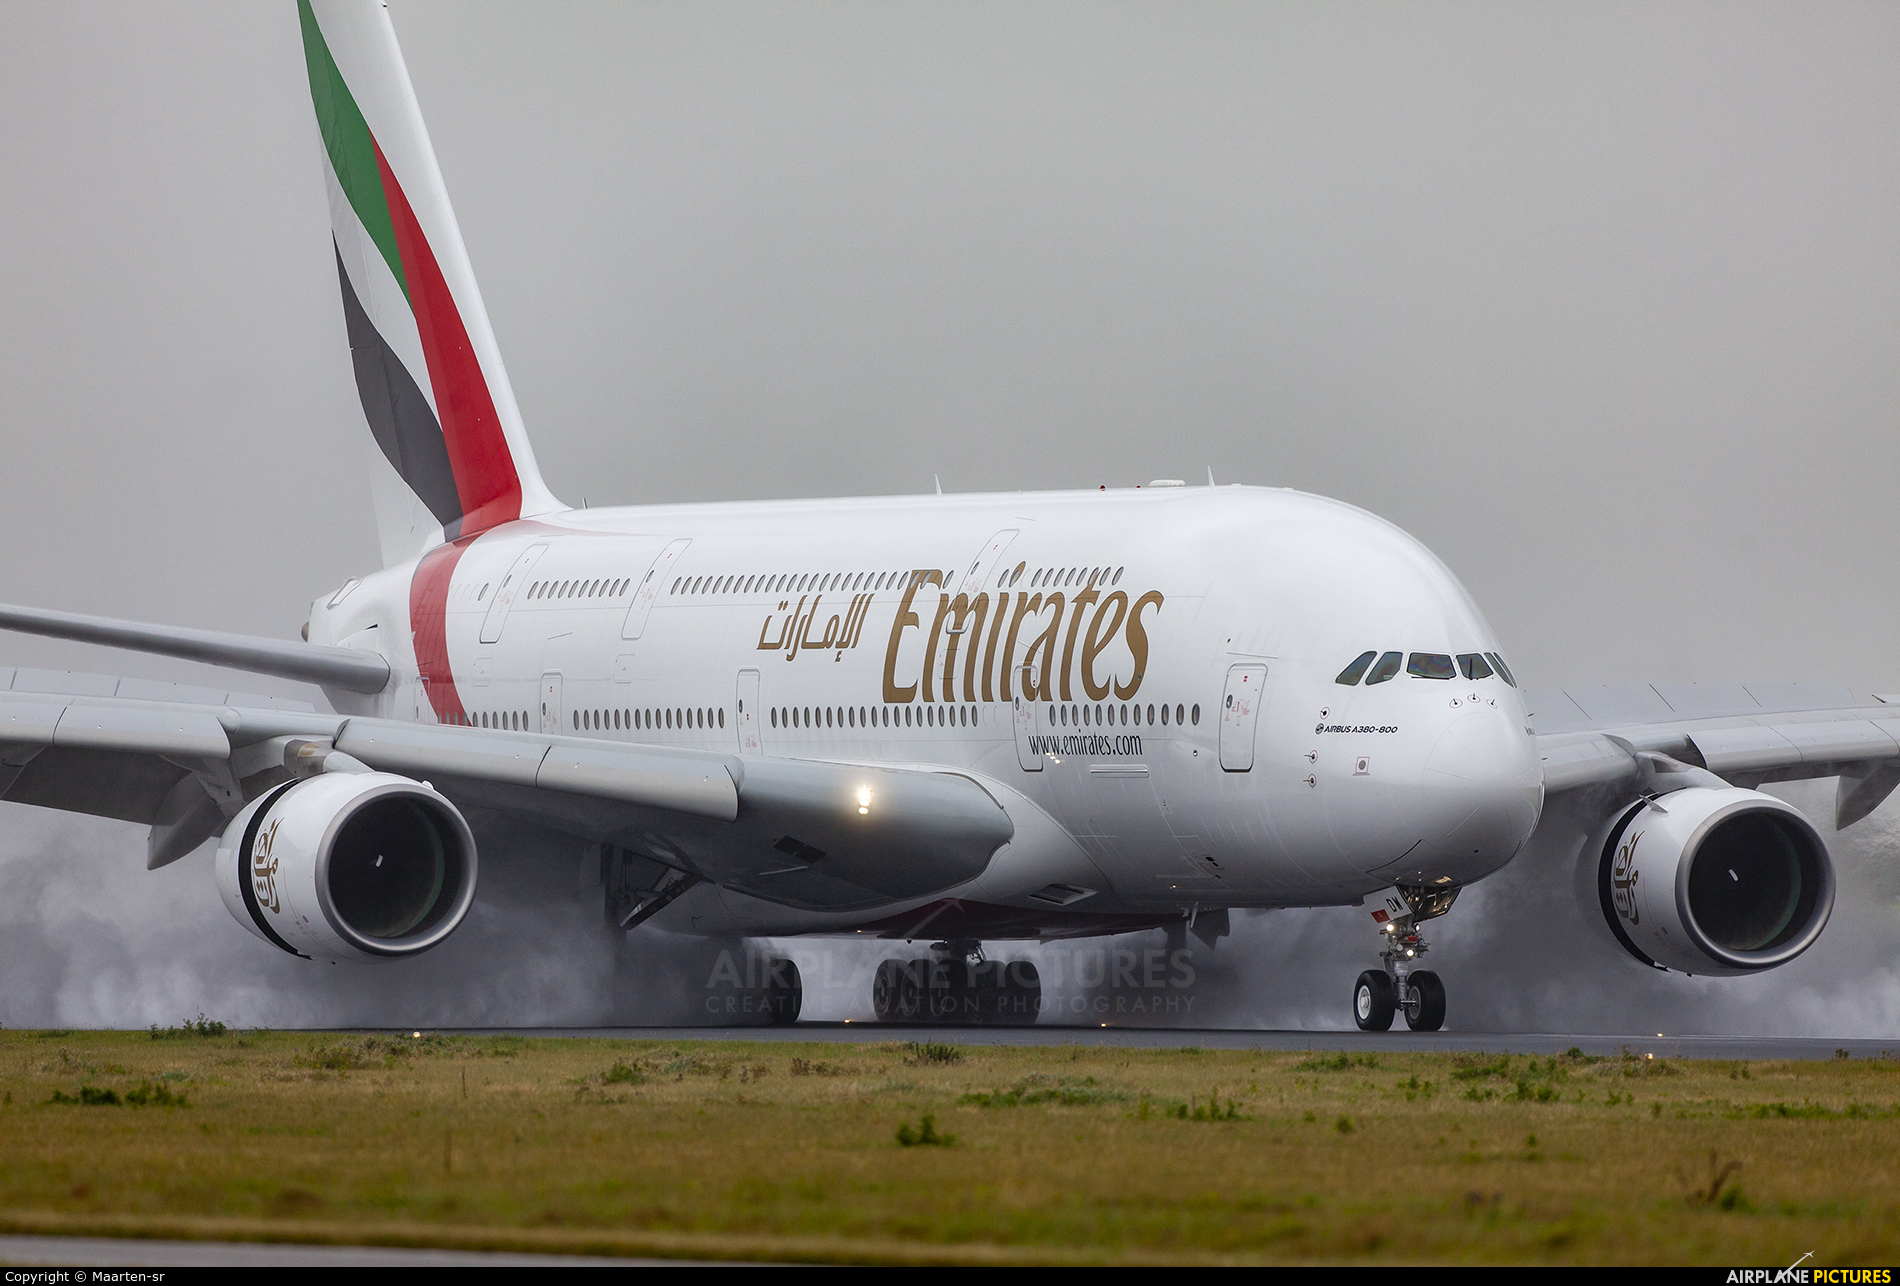 Emirates Airlines A6-EDW aircraft at Amsterdam - Schiphol